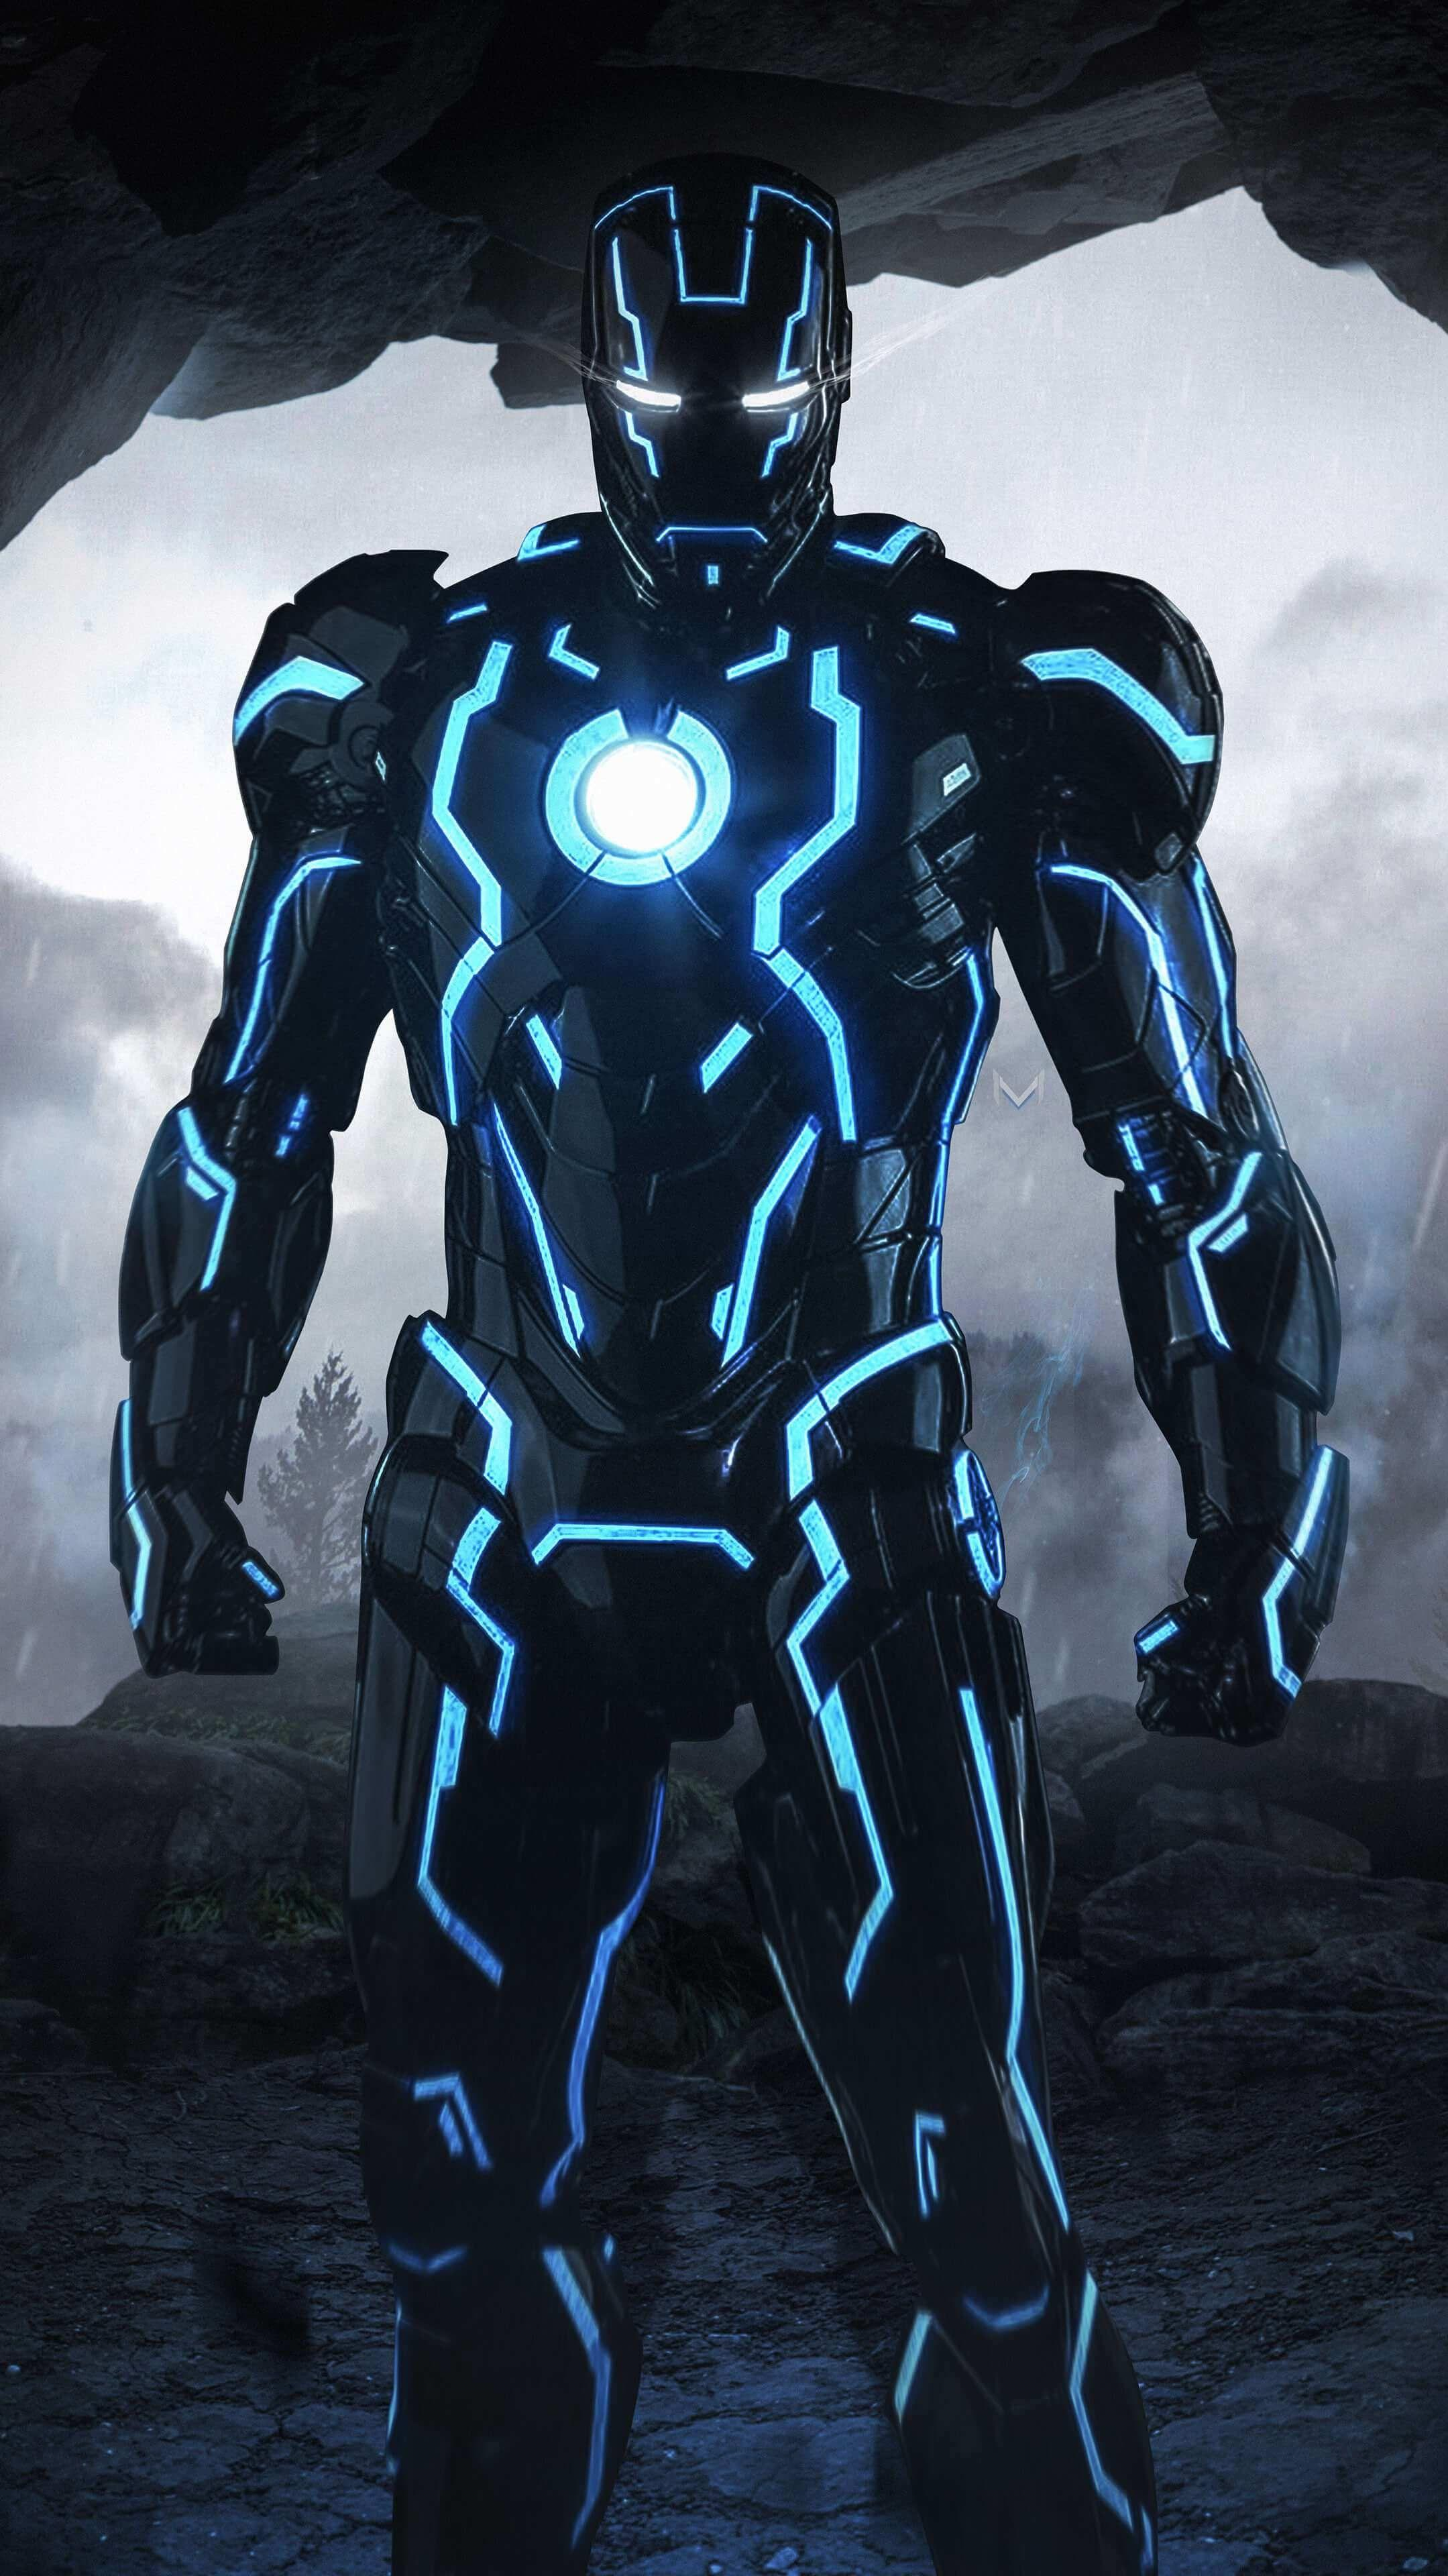 Neon Iron Man Wallpapers Wallpaper Cave